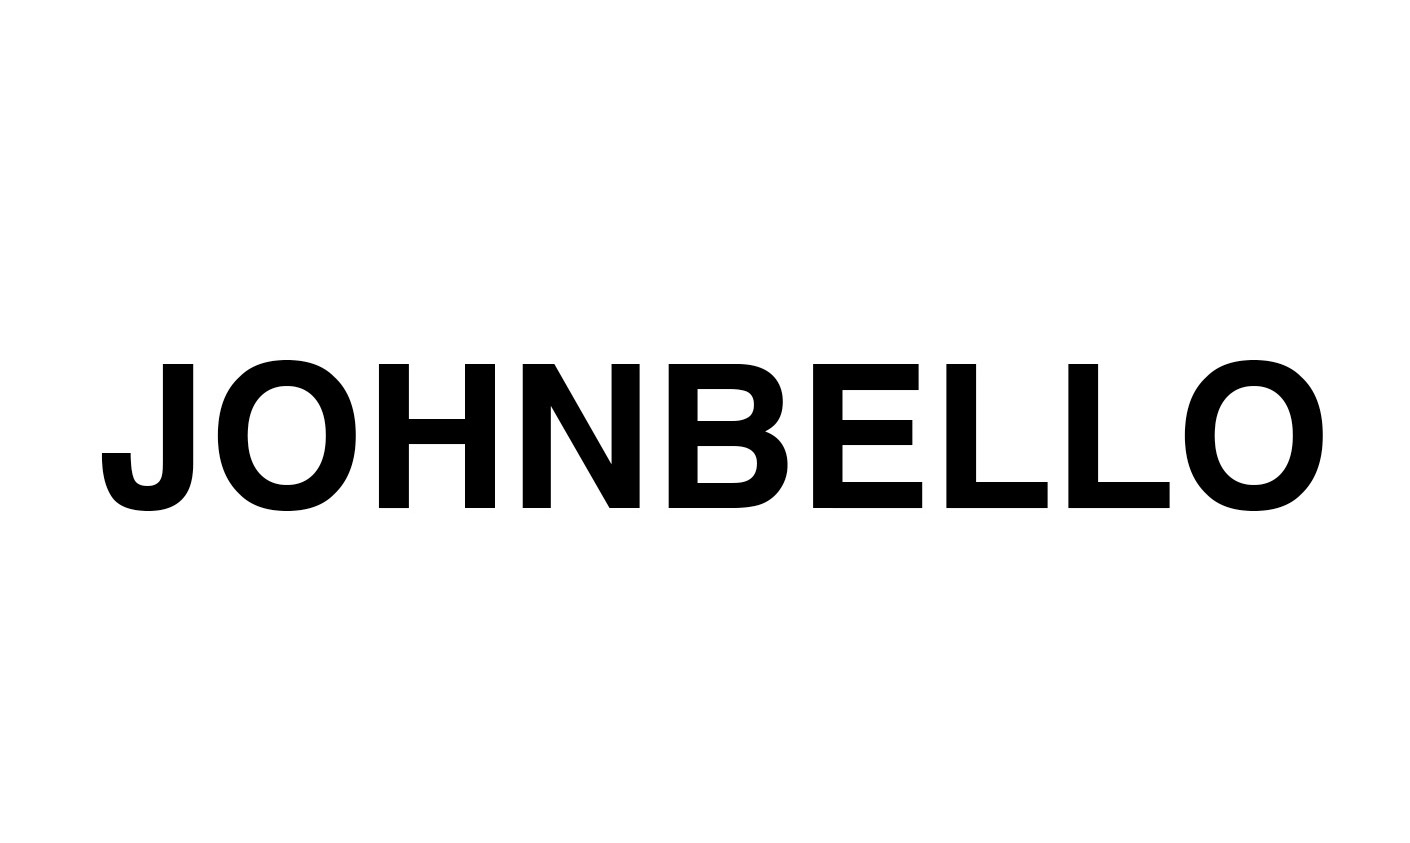 John Bello photography logo